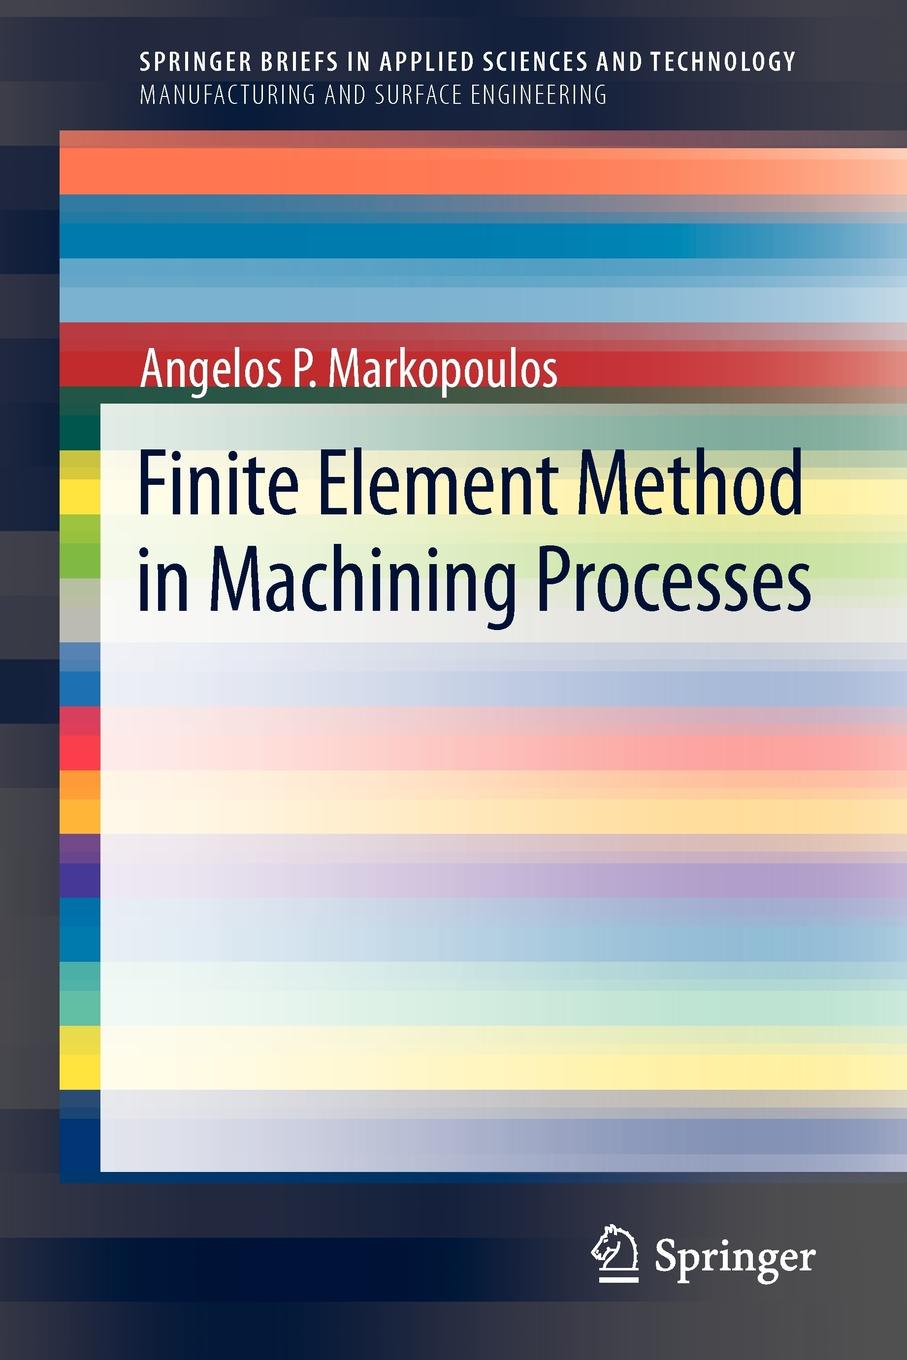 Angelos P Markopoulos Finite Element Method in Machining Processes